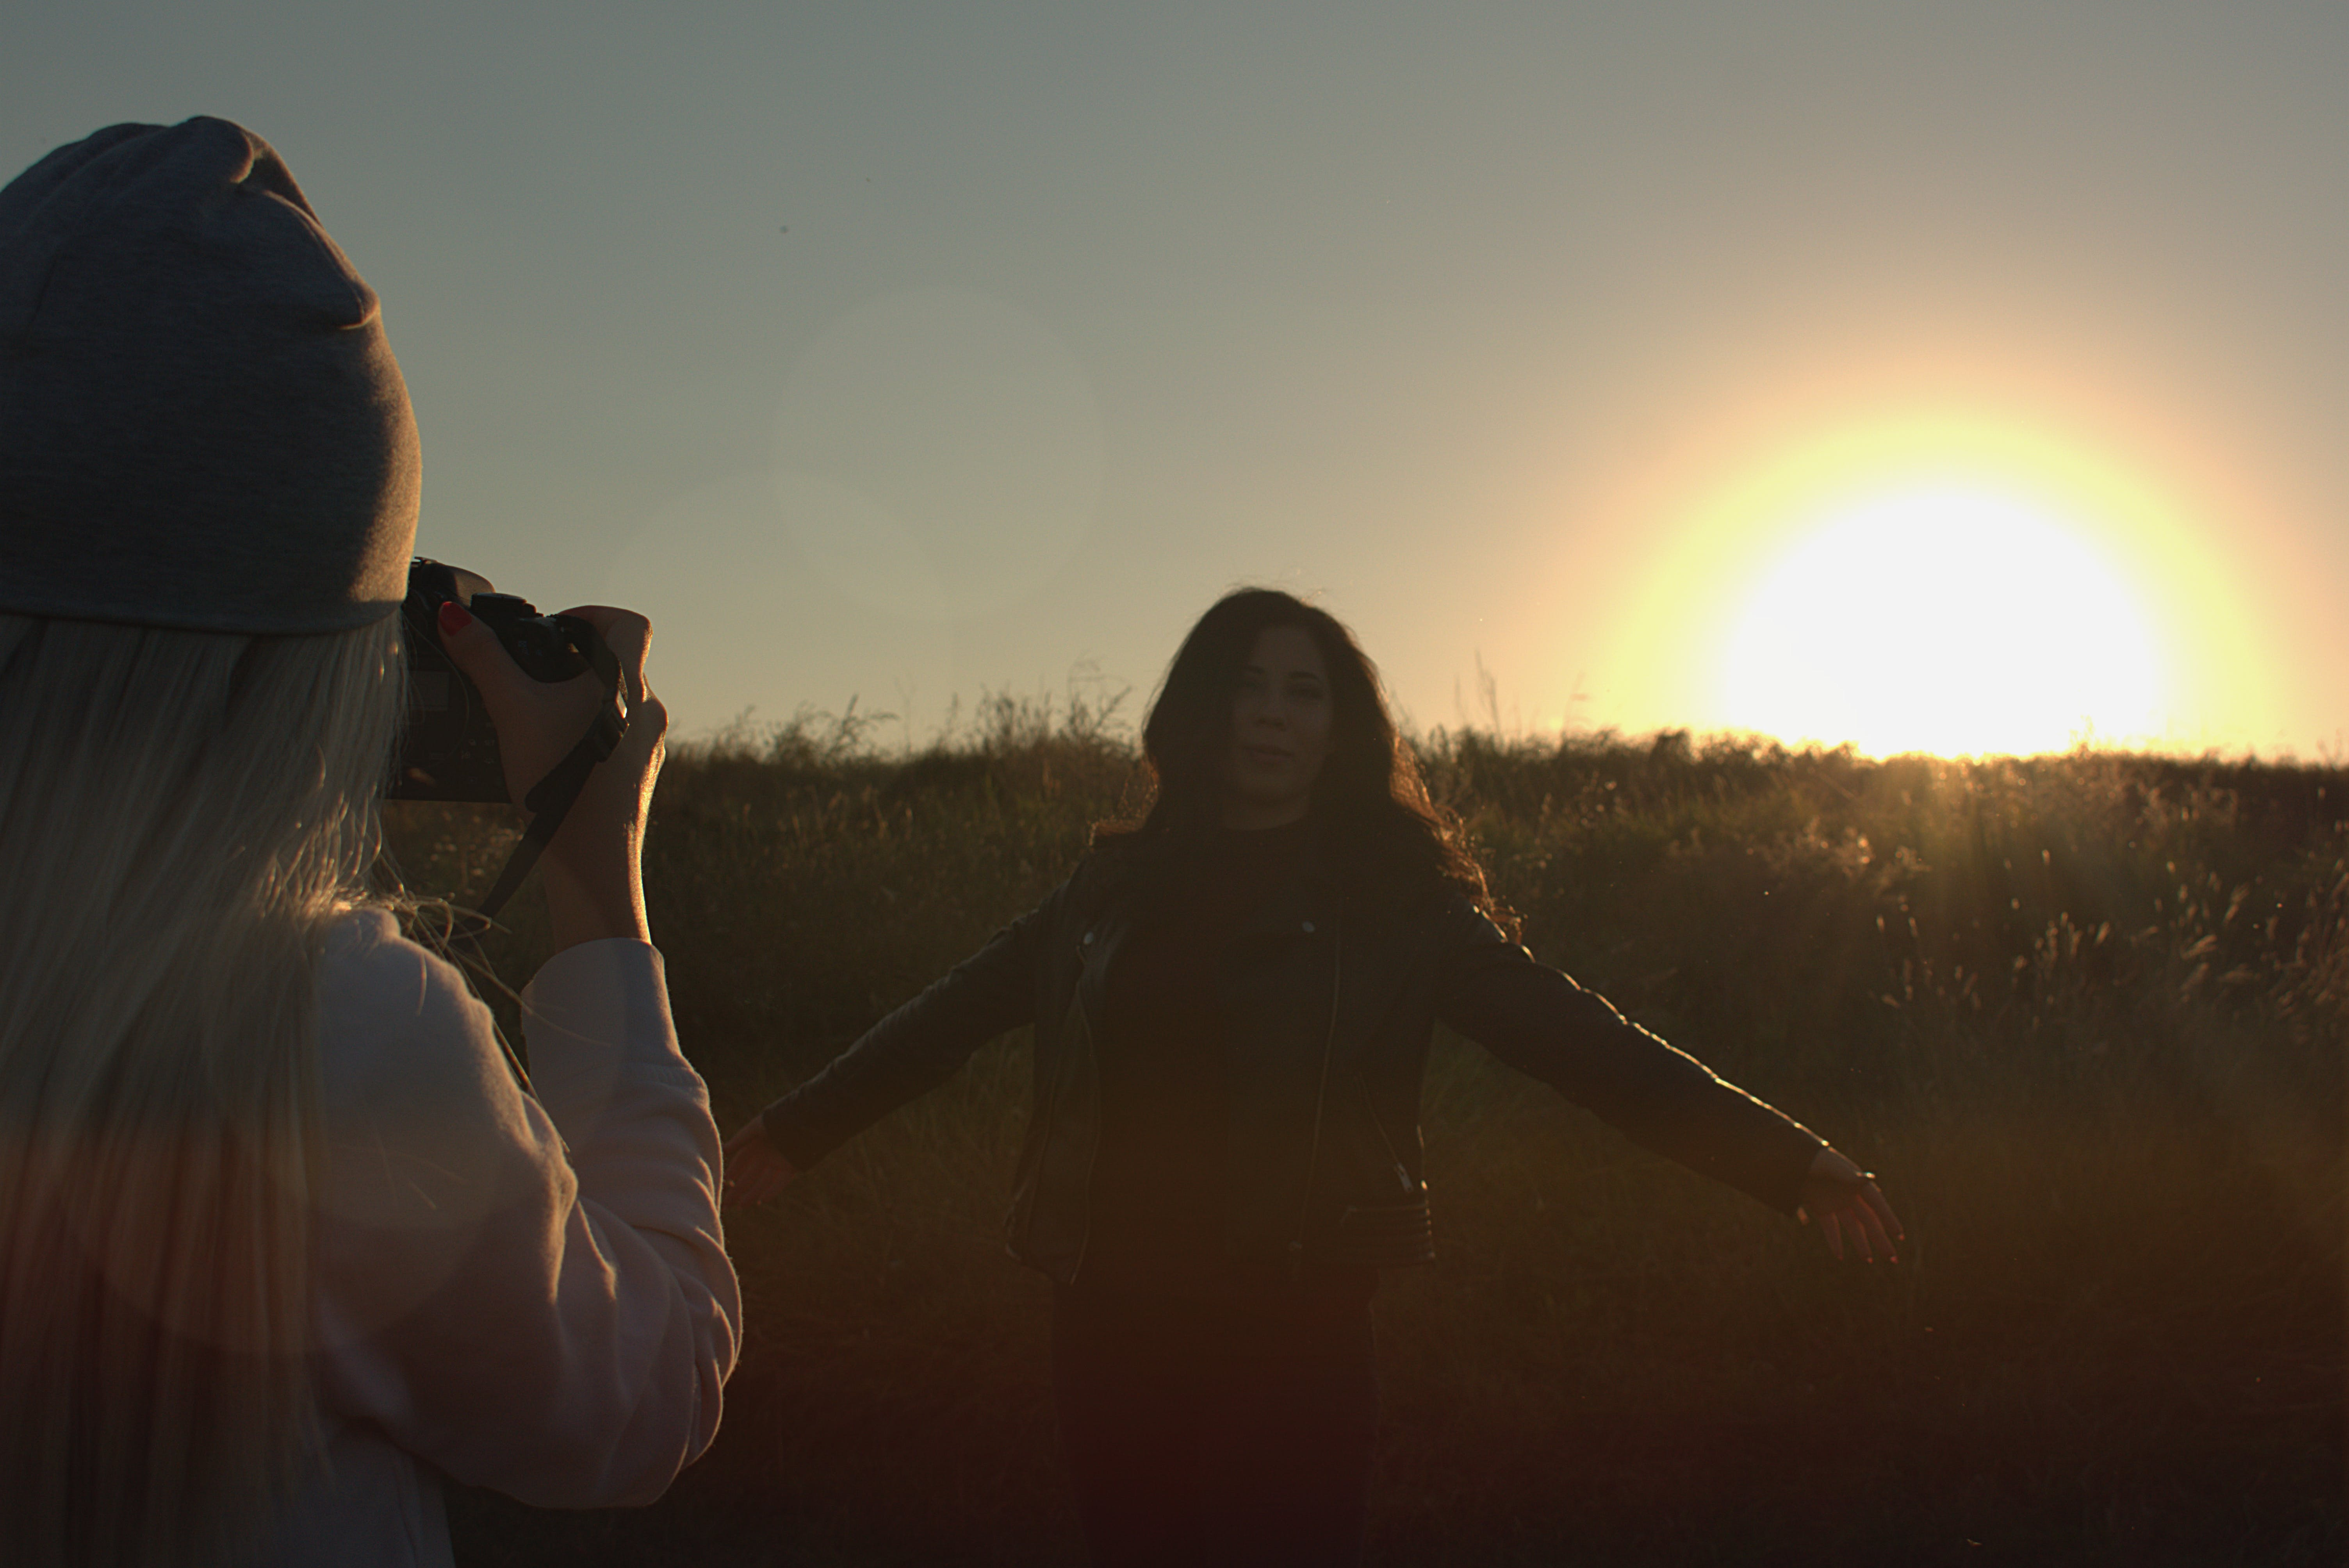 Person Taking Photo of Another Person during Sunset